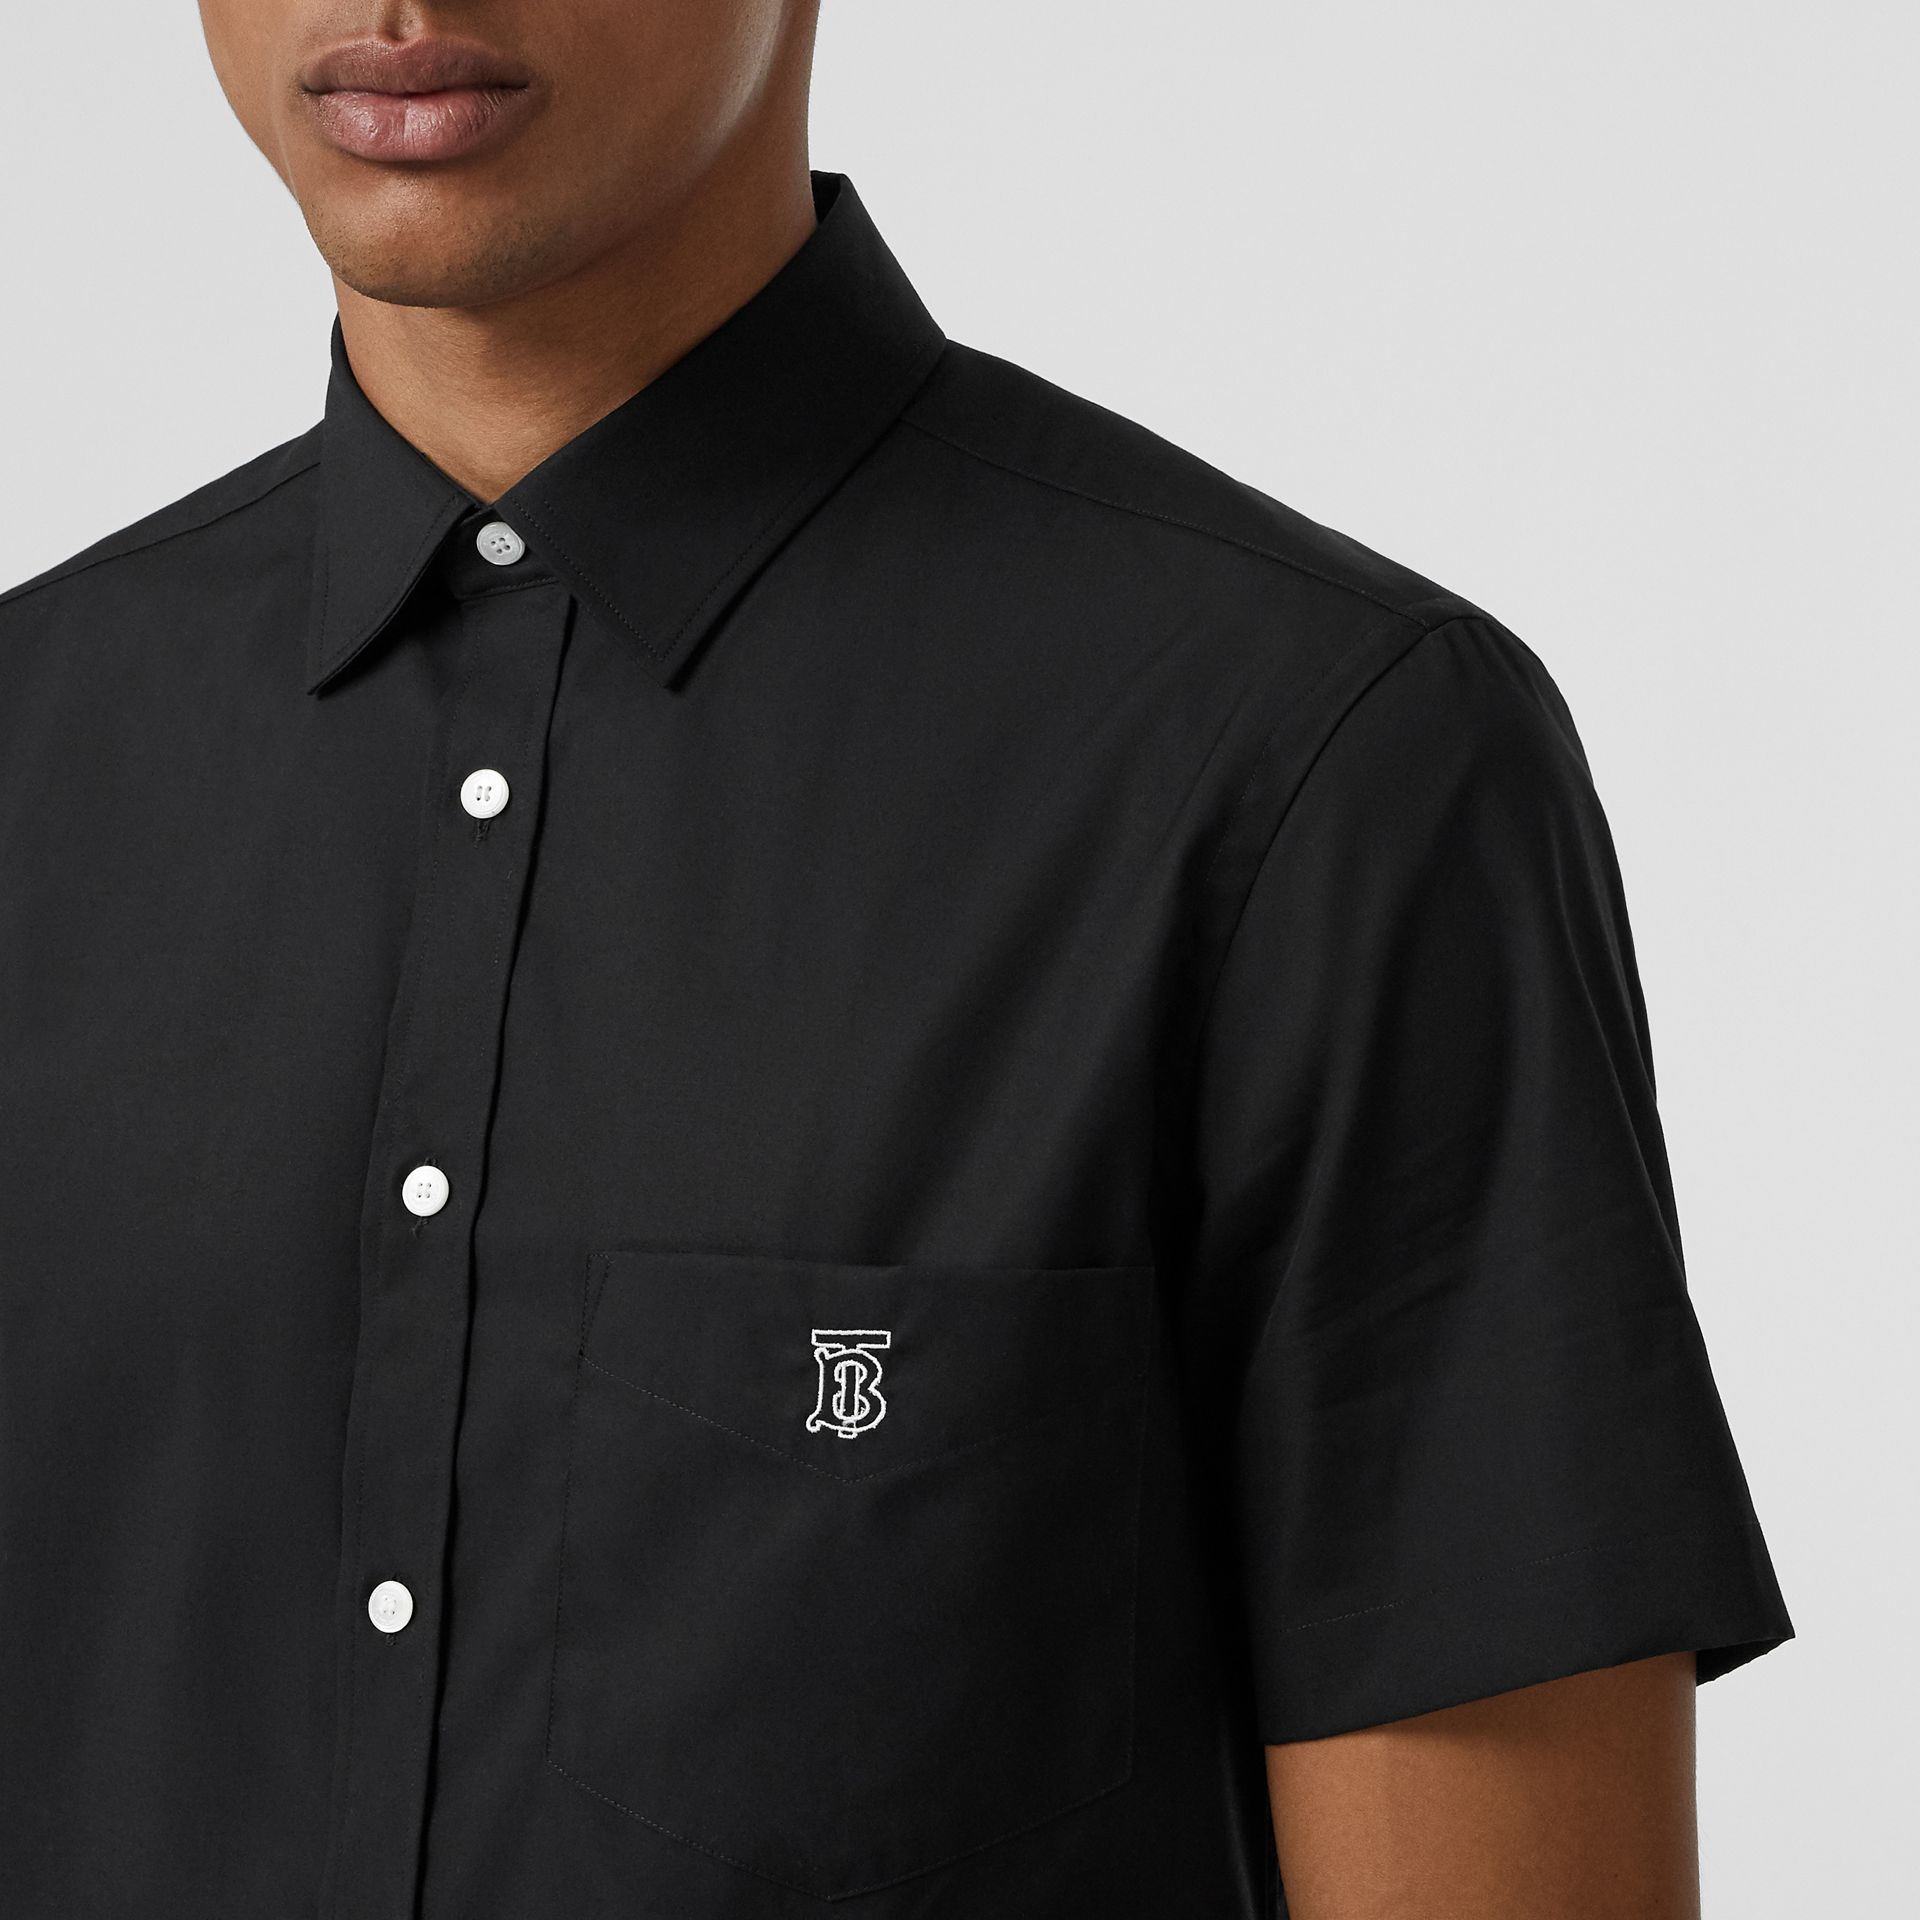 Short-sleeve Monogram Motif Stretch Cotton Shirt in Black - Men | Burberry - gallery image 1